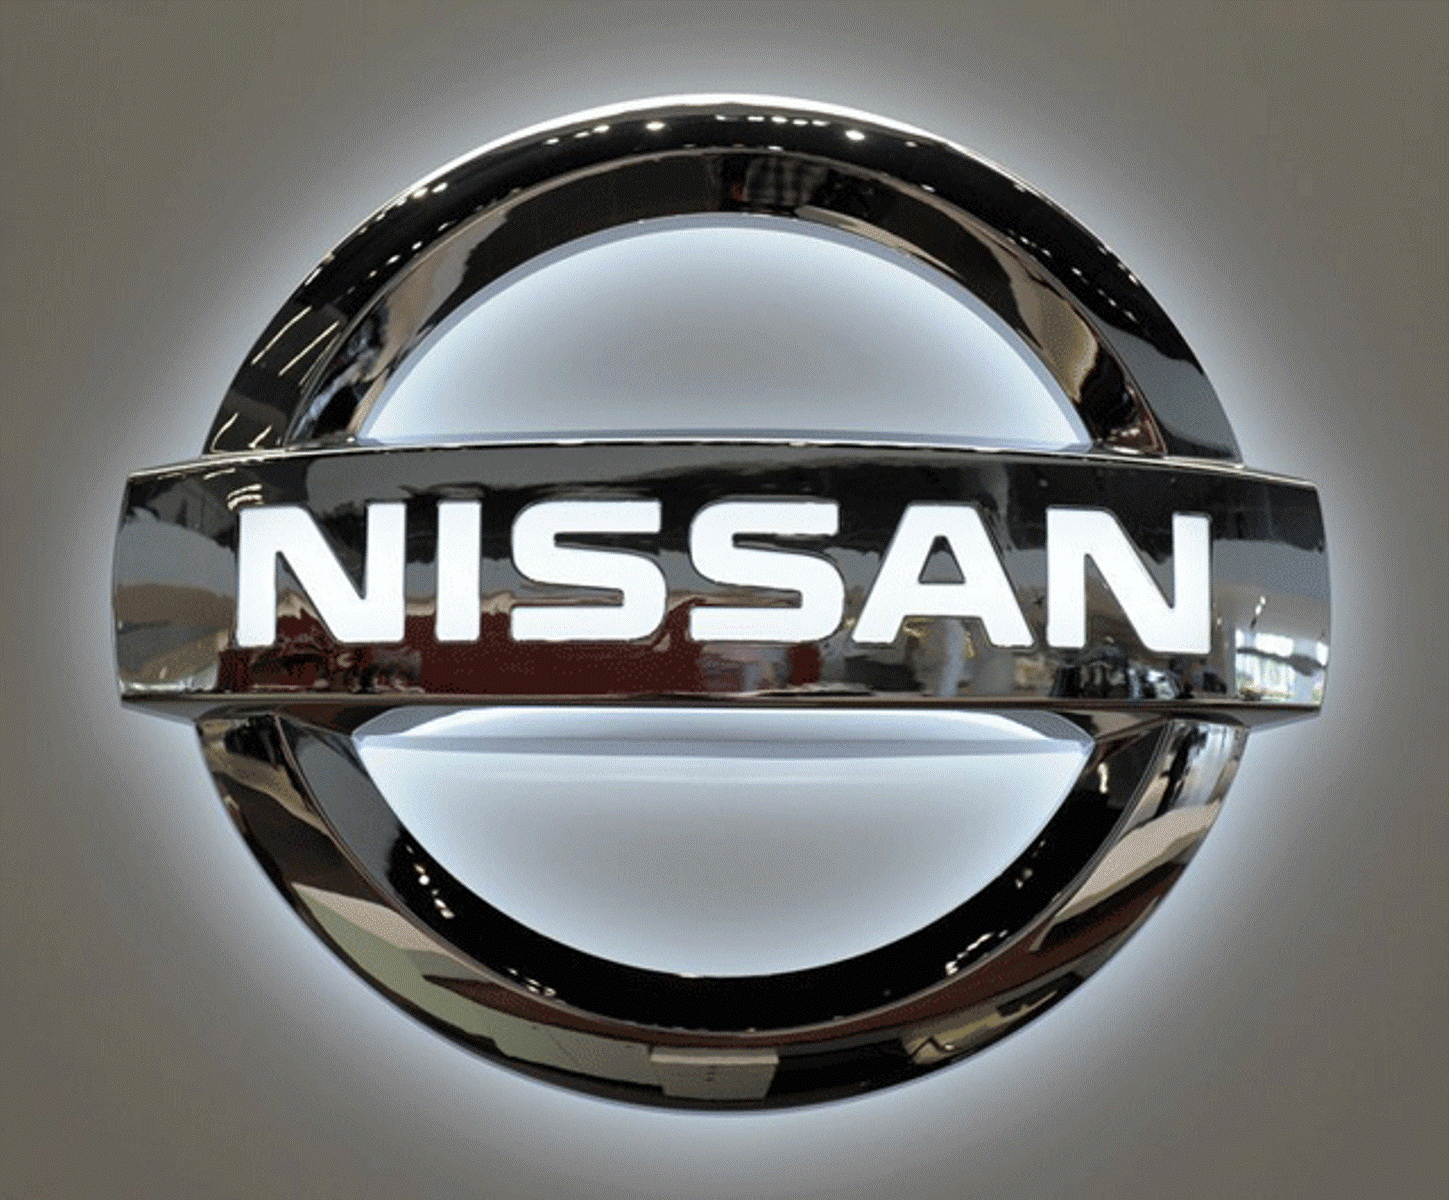 2015 Nissan Maxima >> Nissan Logo, Nissan Car Symbol Meaning and History | Car Brand Names.com